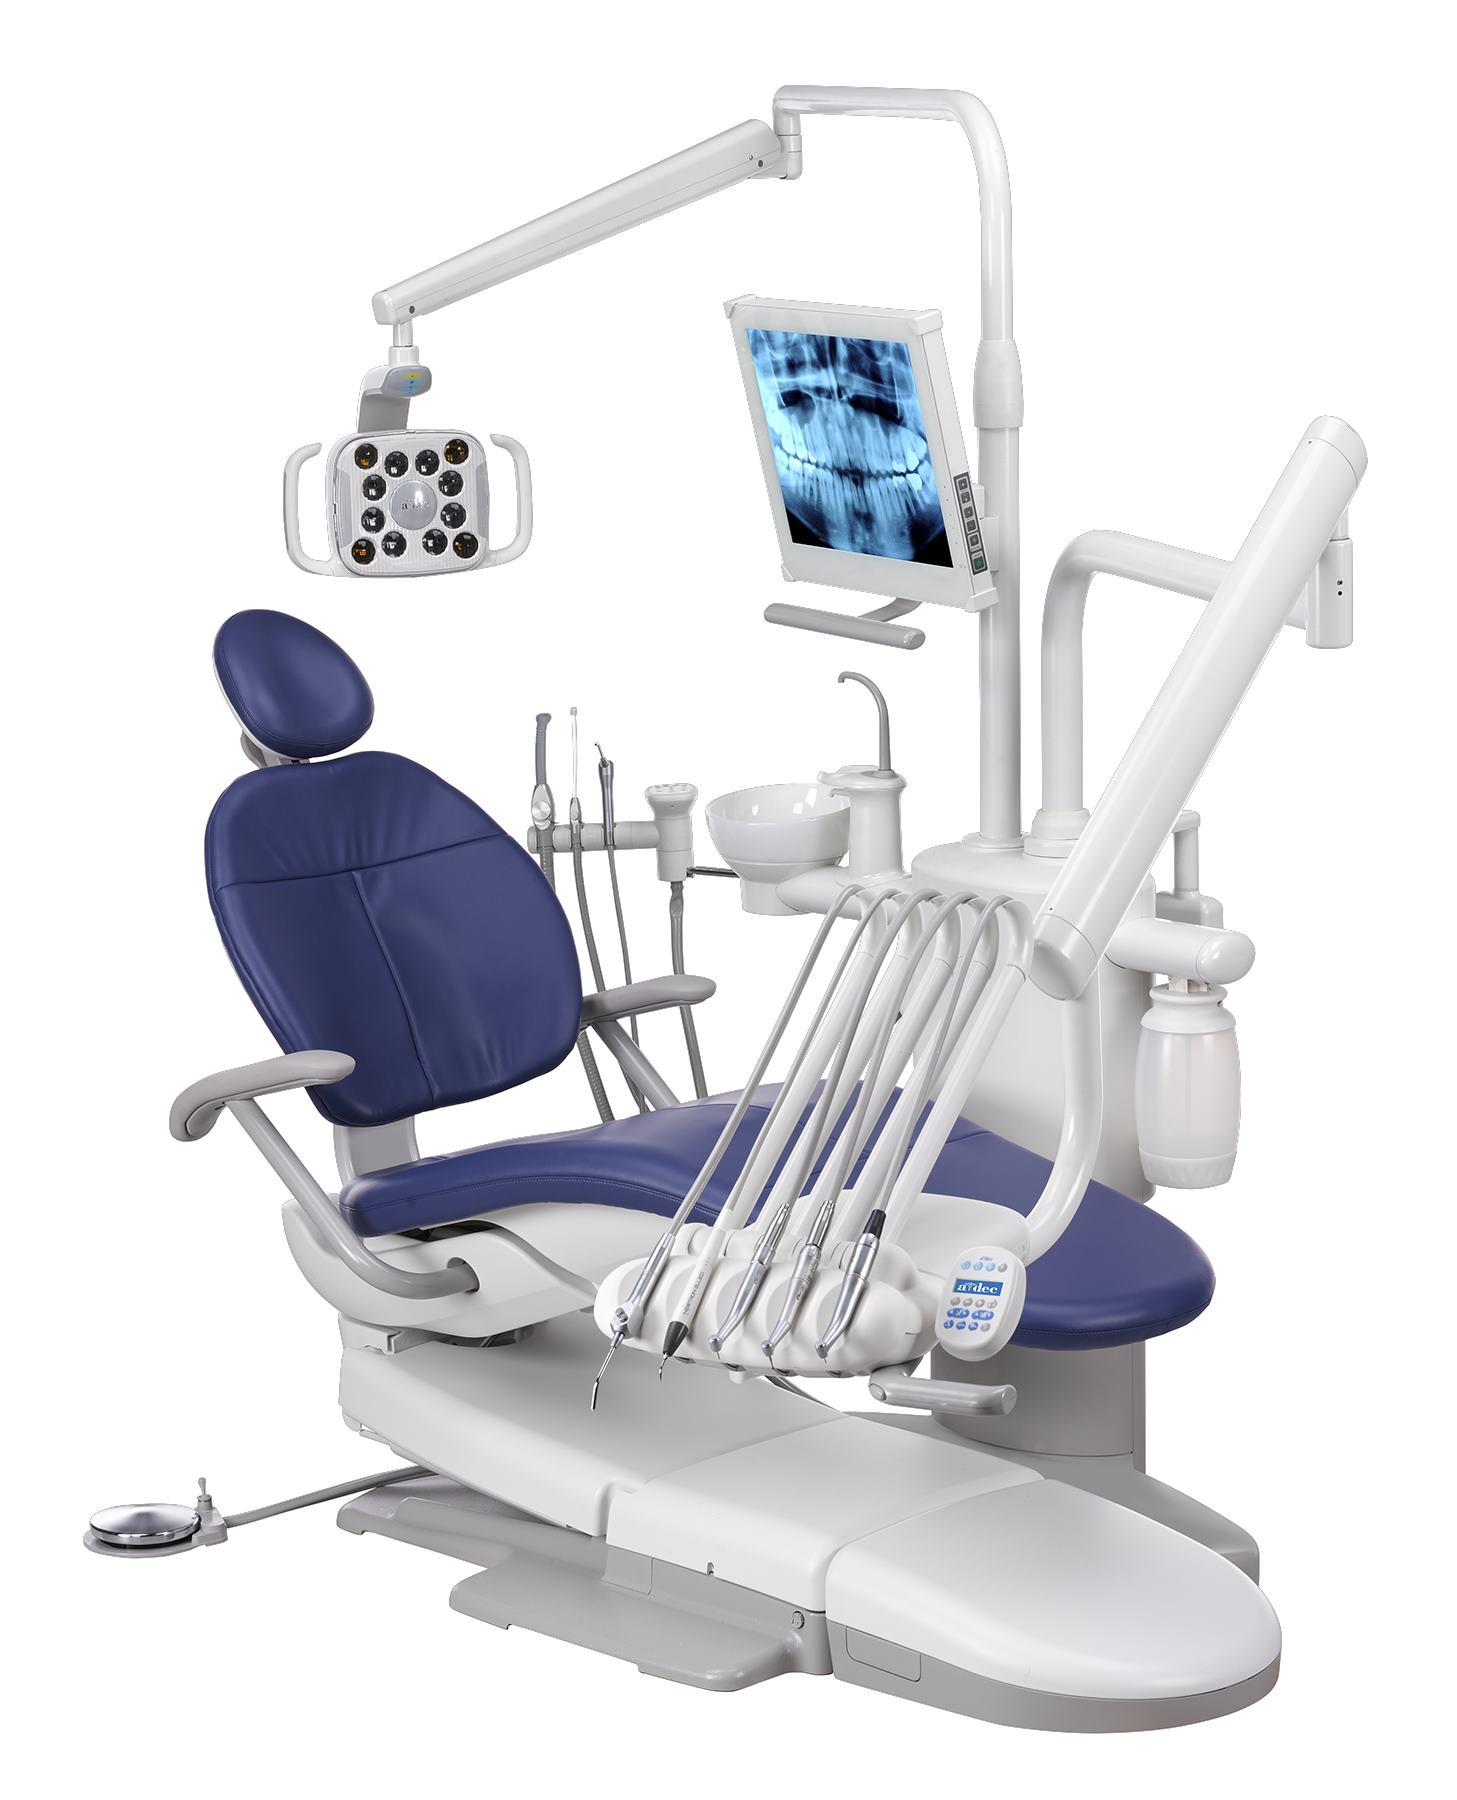 Adec 300 Pedestal Quality Dental Chairs Australia